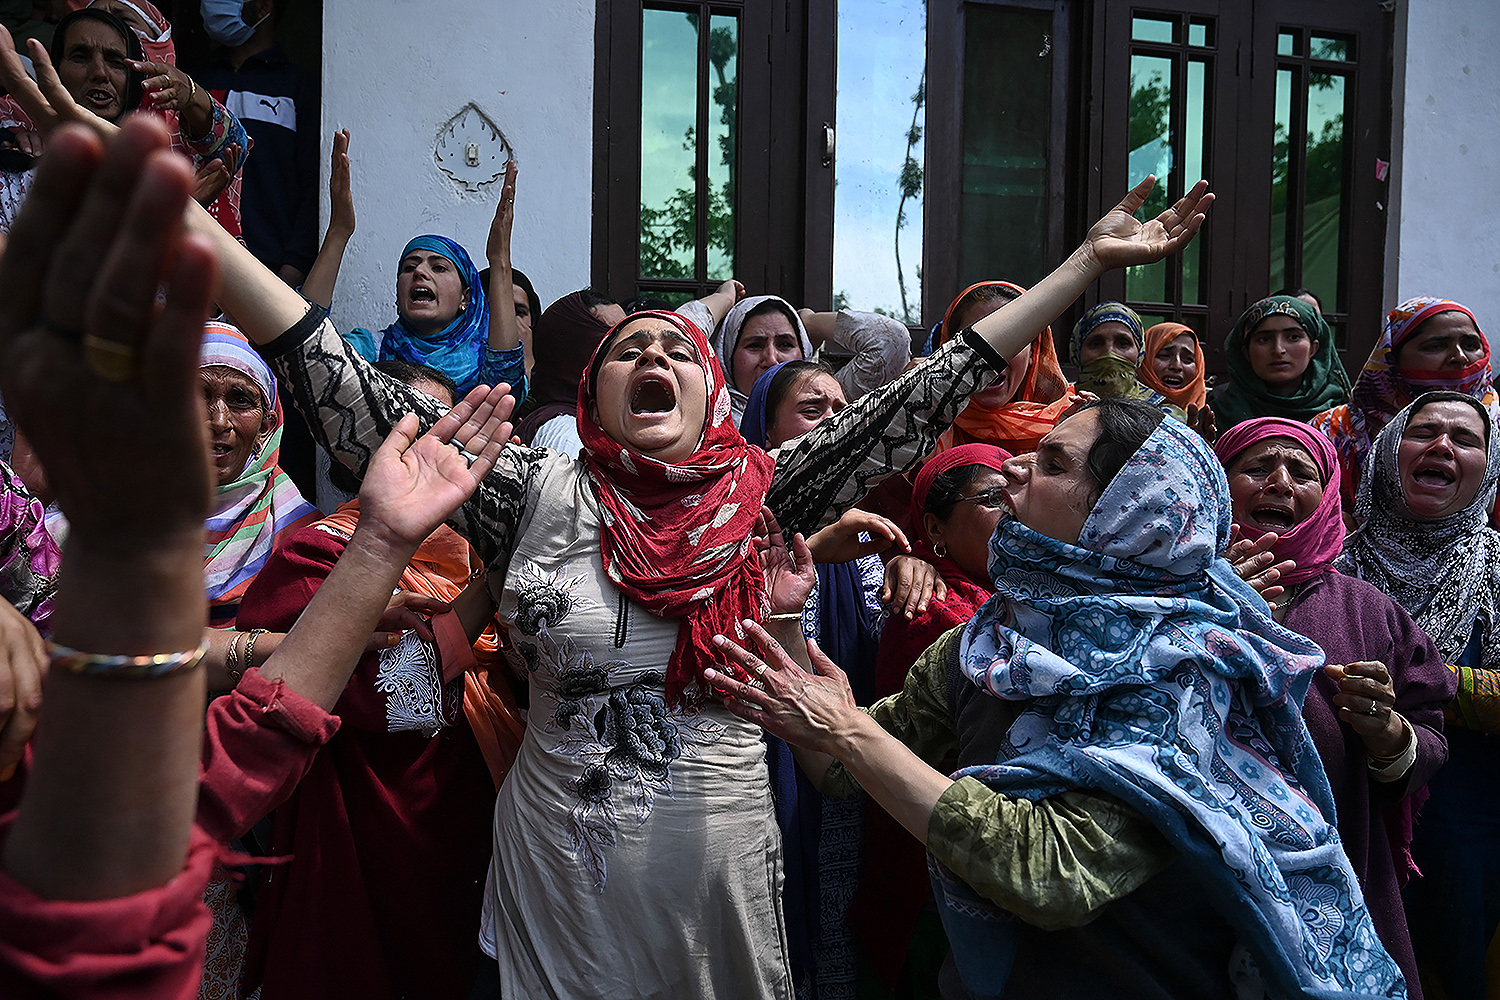 Relatives and neighbors mourn the death of Mehrajudin Shah—who, according to local media reports, was shot by Indian paramilitary troopers after not stopping at a checkpoint—in central Kashmir's Budgam district on May 13. TAUSEEF MUSTAFA/AFP via Getty Images